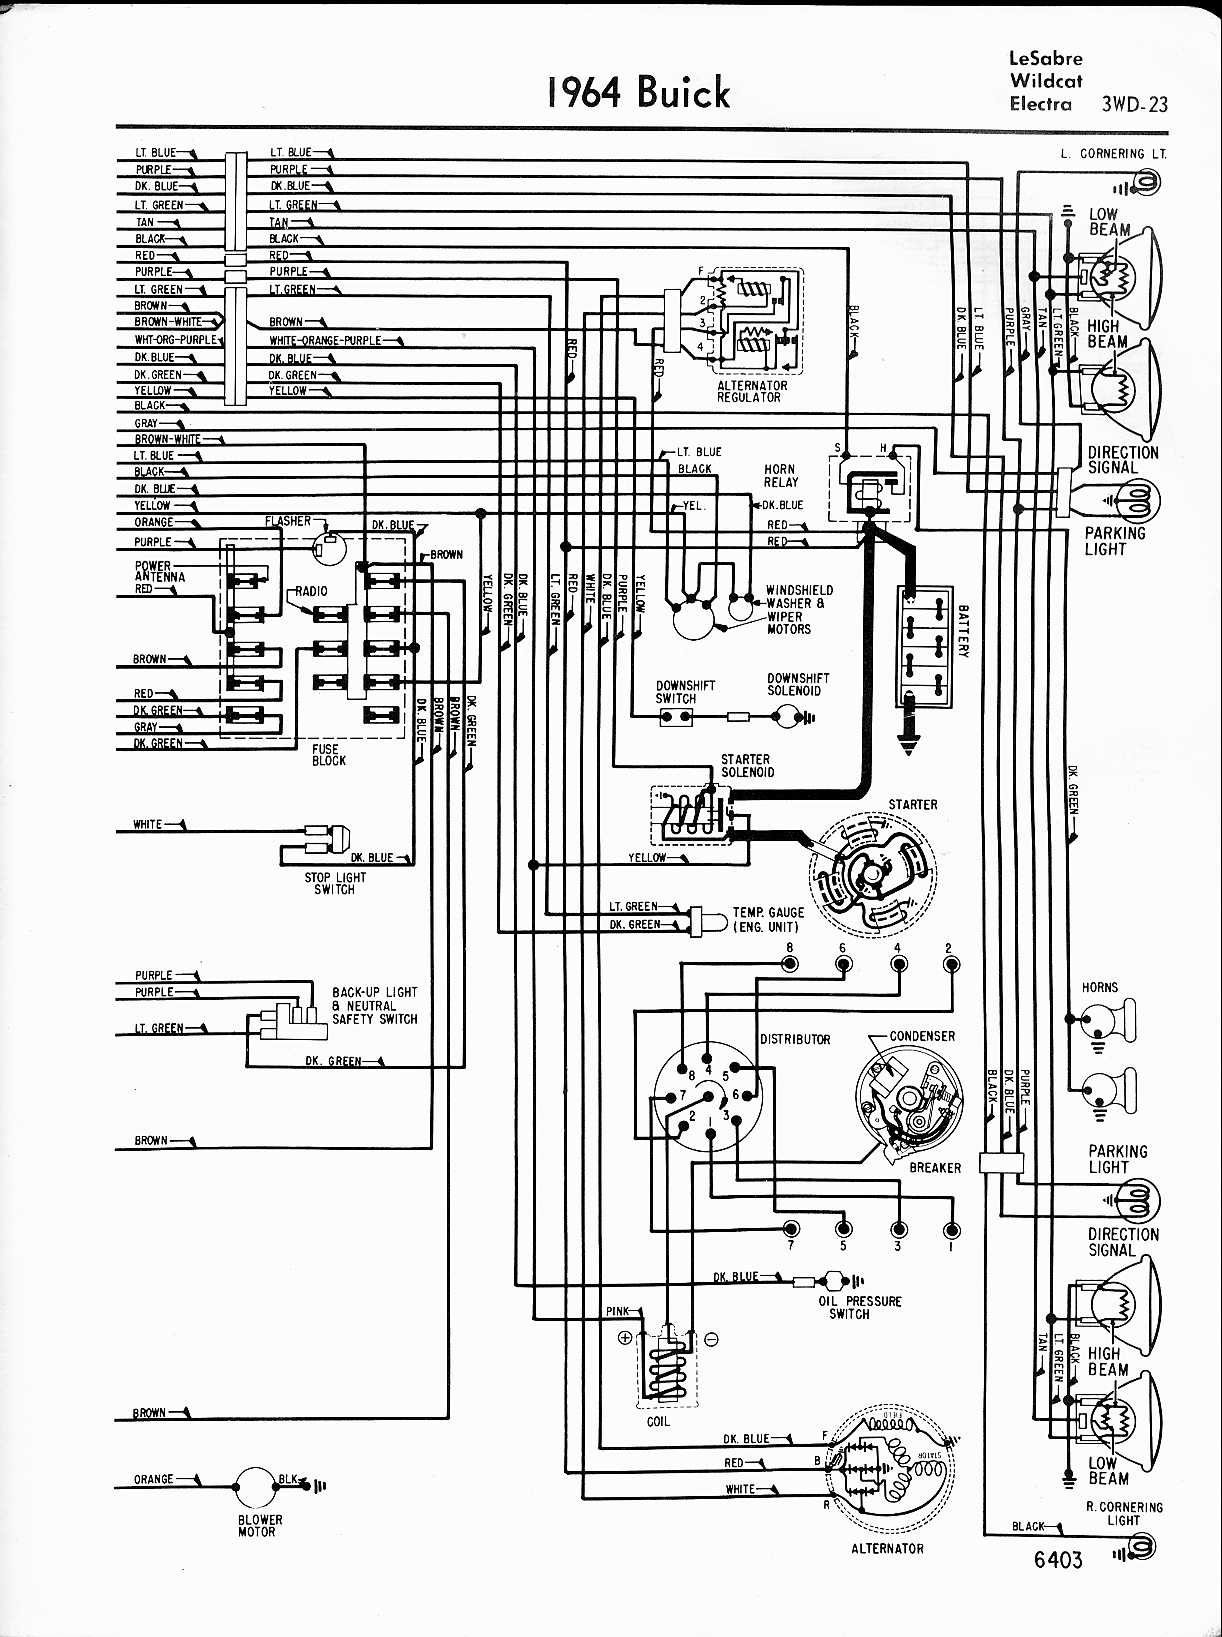 94 park avenue wiring diagram get free image about wiring diagram Engineering Wiring Diagram buick wiring schematics online wiring diagram rh 23 vgc2018 de